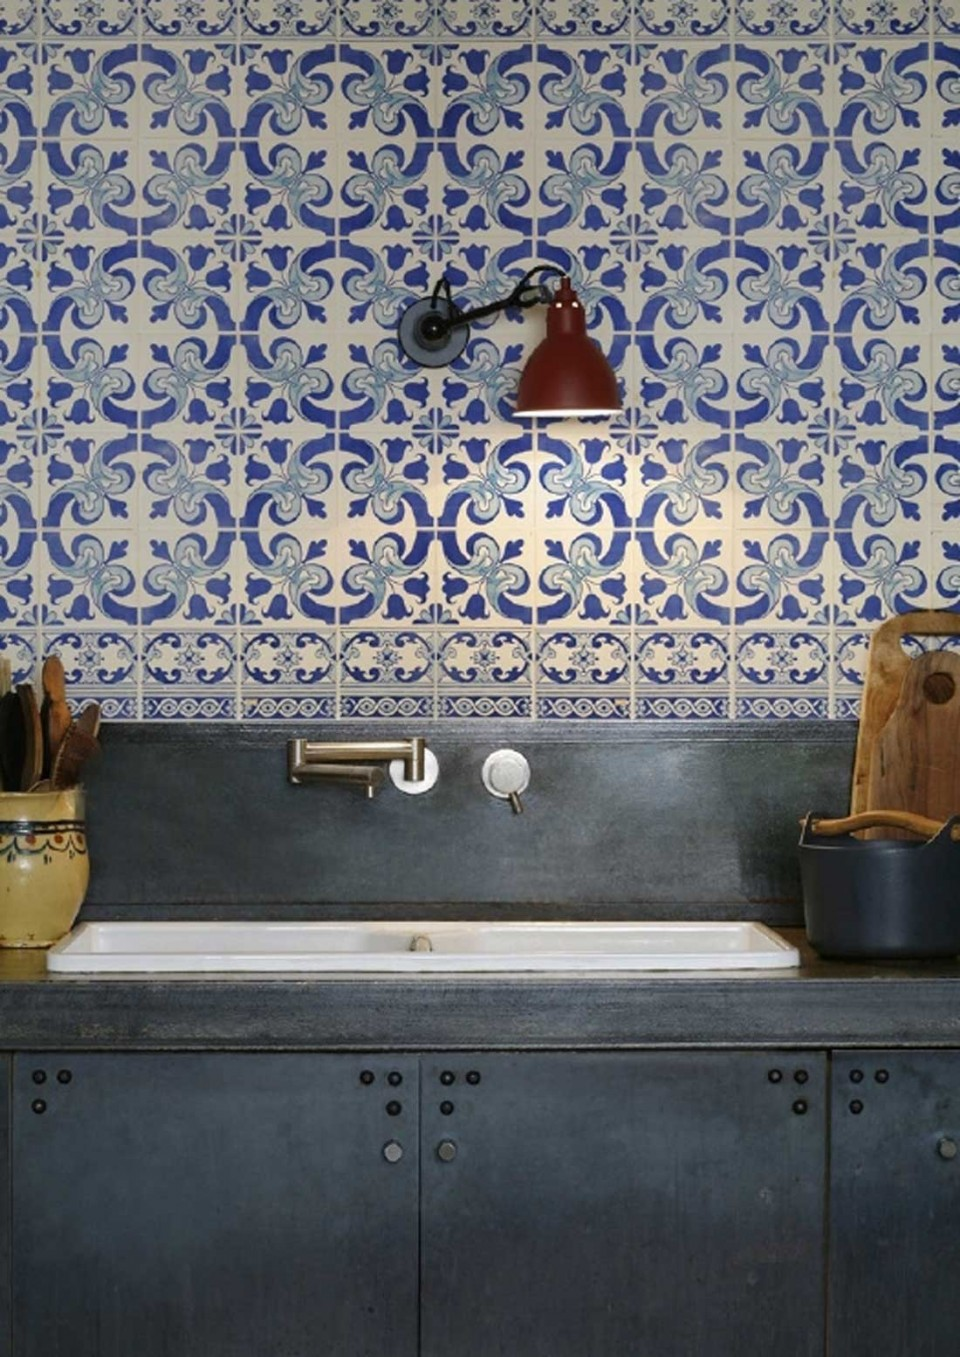 Love delft tiles? Why not create a delft tile splashback in your kitchen with this super easy hack!